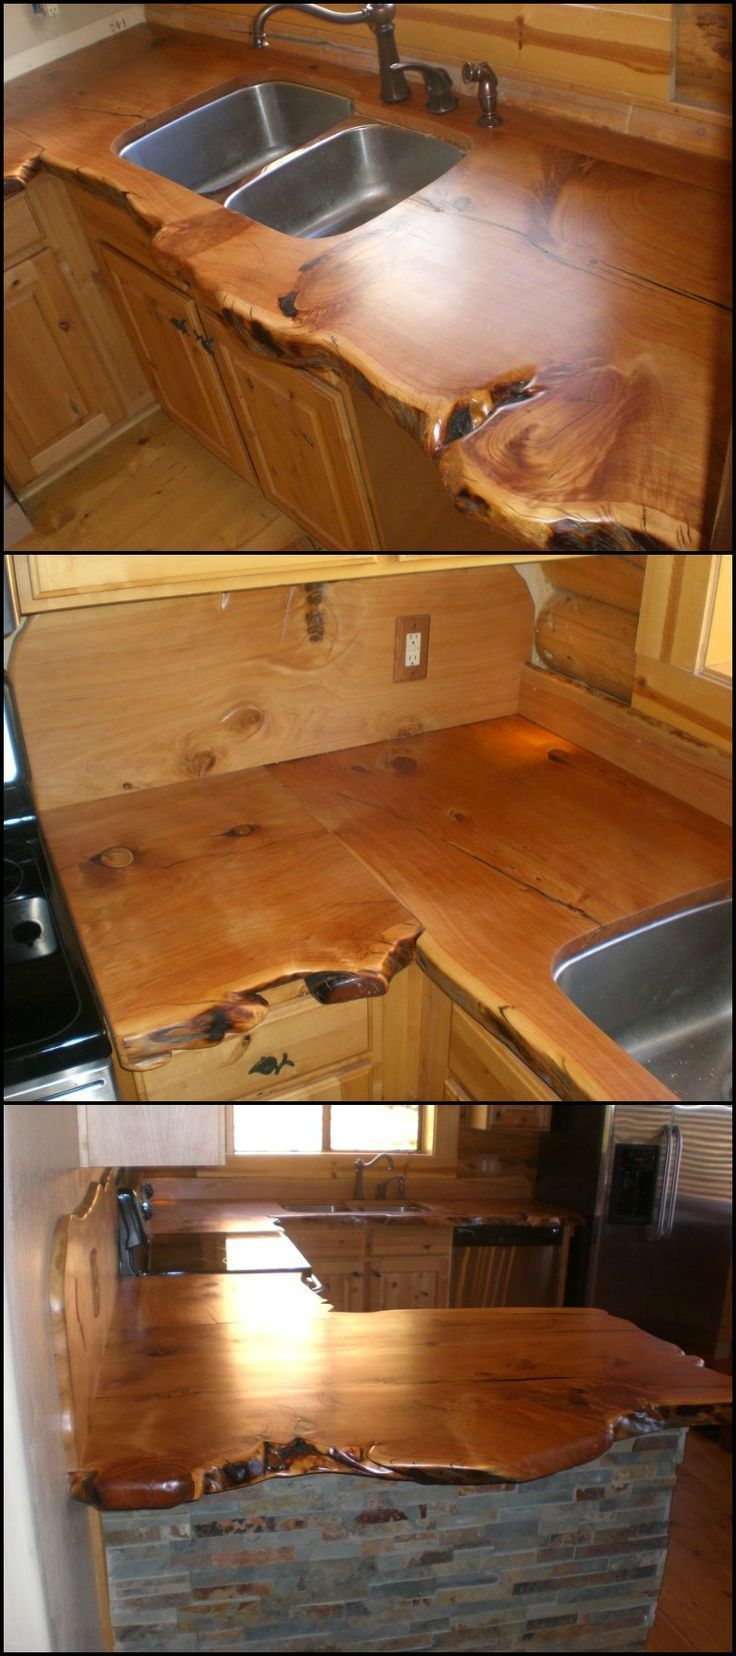 Homemade Cabin Kitchen Counter Ideas on homemade garage ideas, homemade backyard ideas, homemade cabinet ideas, homemade bed ideas, homemade bedroom ideas, homemade fireplace ideas, homemade cutting board ideas, homemade bookshelf ideas,